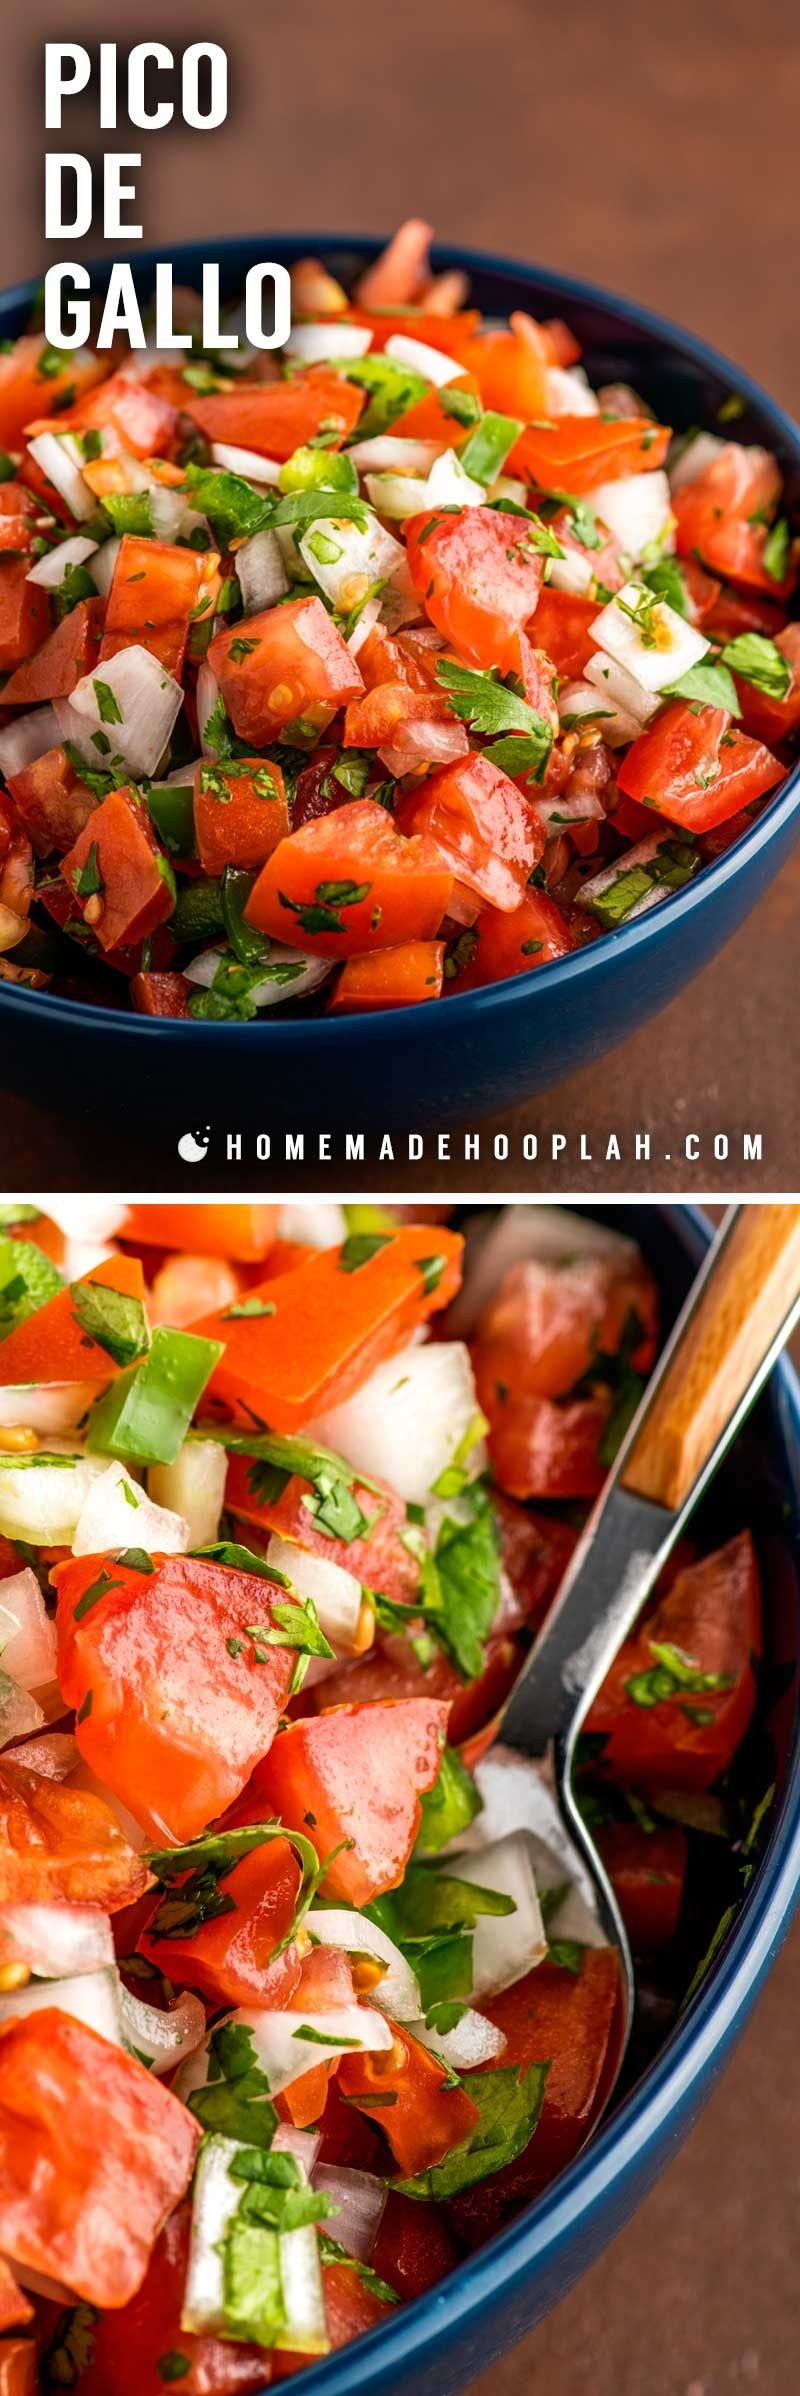 A bowl of pico de gallo made with roma tomatoes, onion, cilantro, jalapeno, lime juice, and salt.